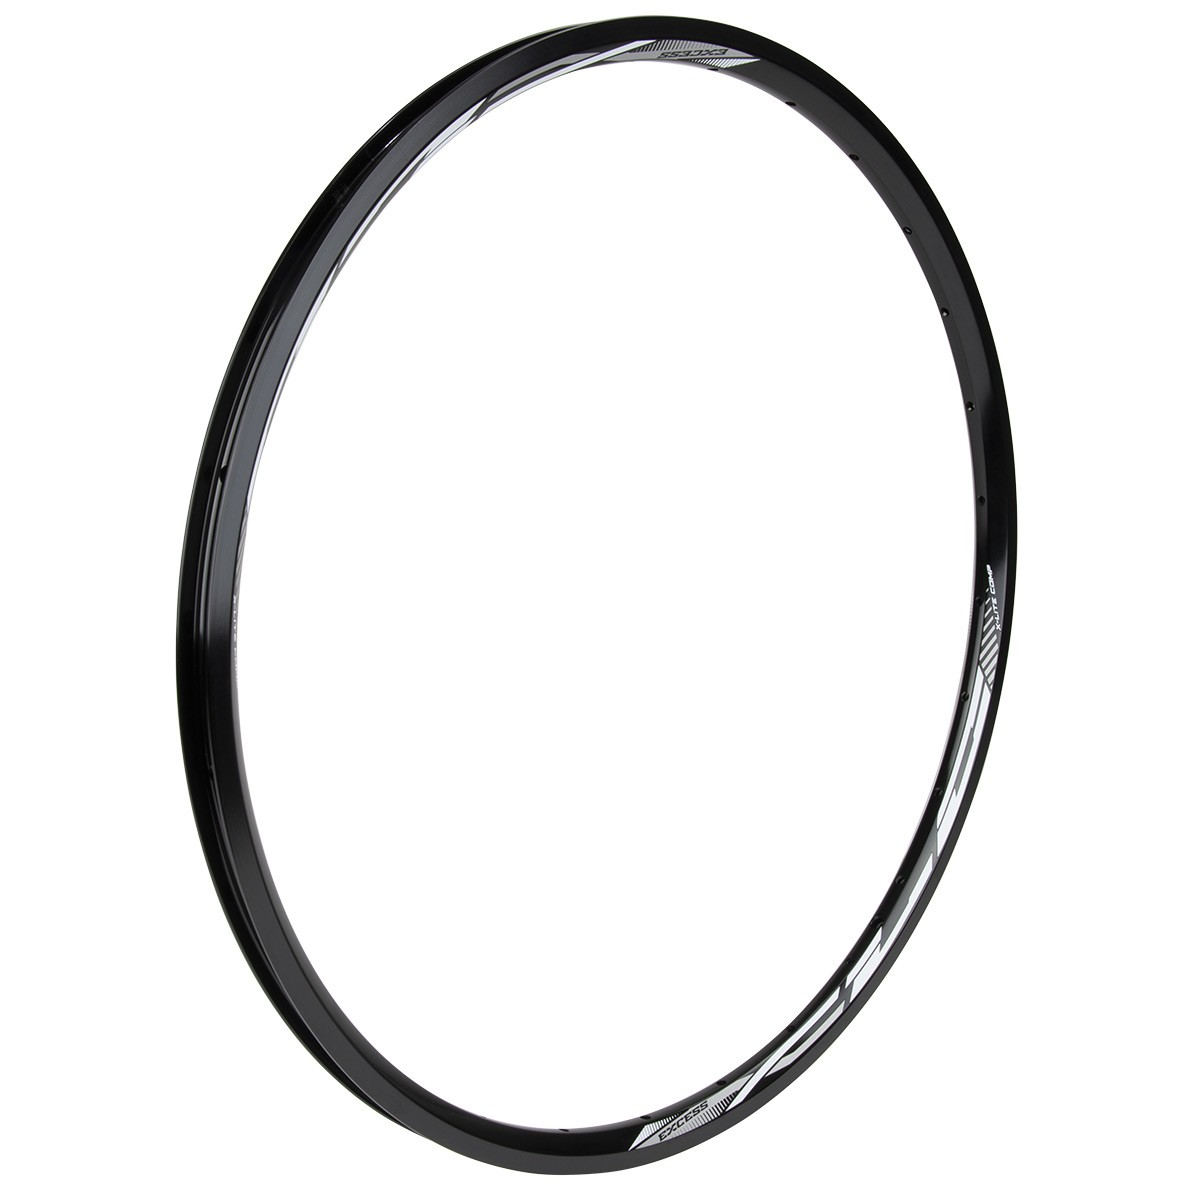 EXCESS XLC ALLOY RIM 451X19.5MM 28H WITH BRAKE SURFACE